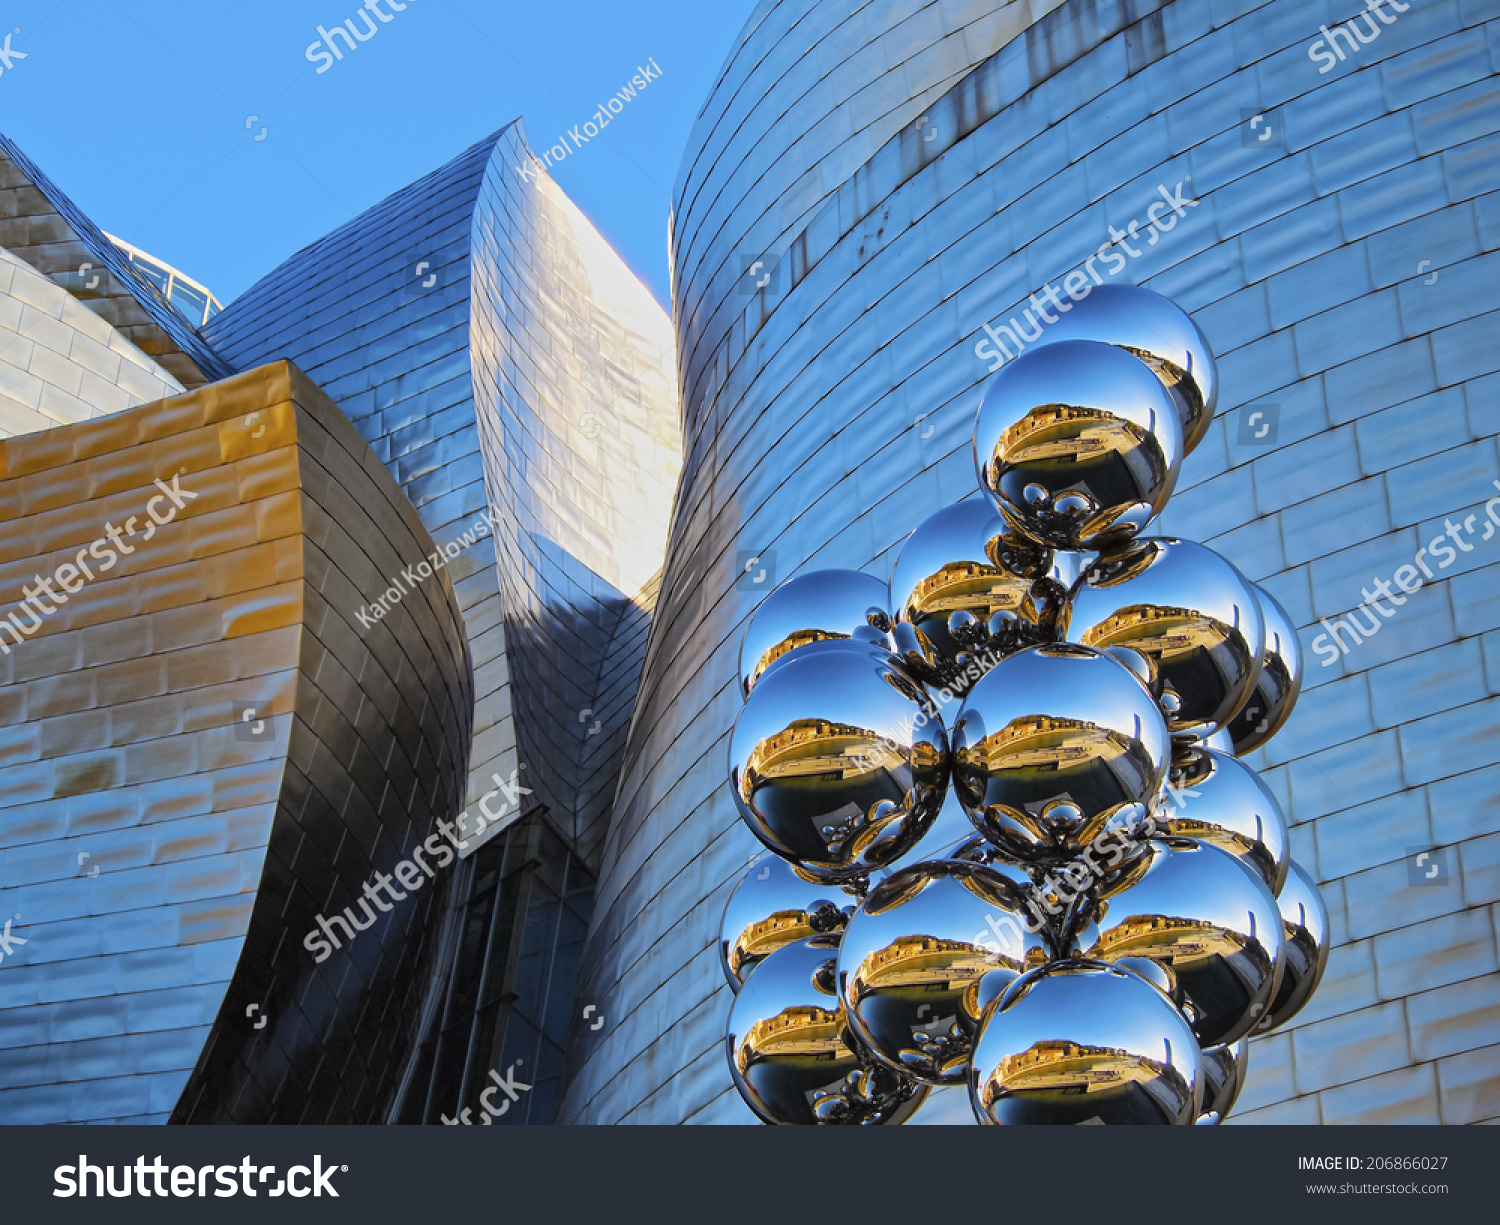 Bilbao spain march sculpture stock photo